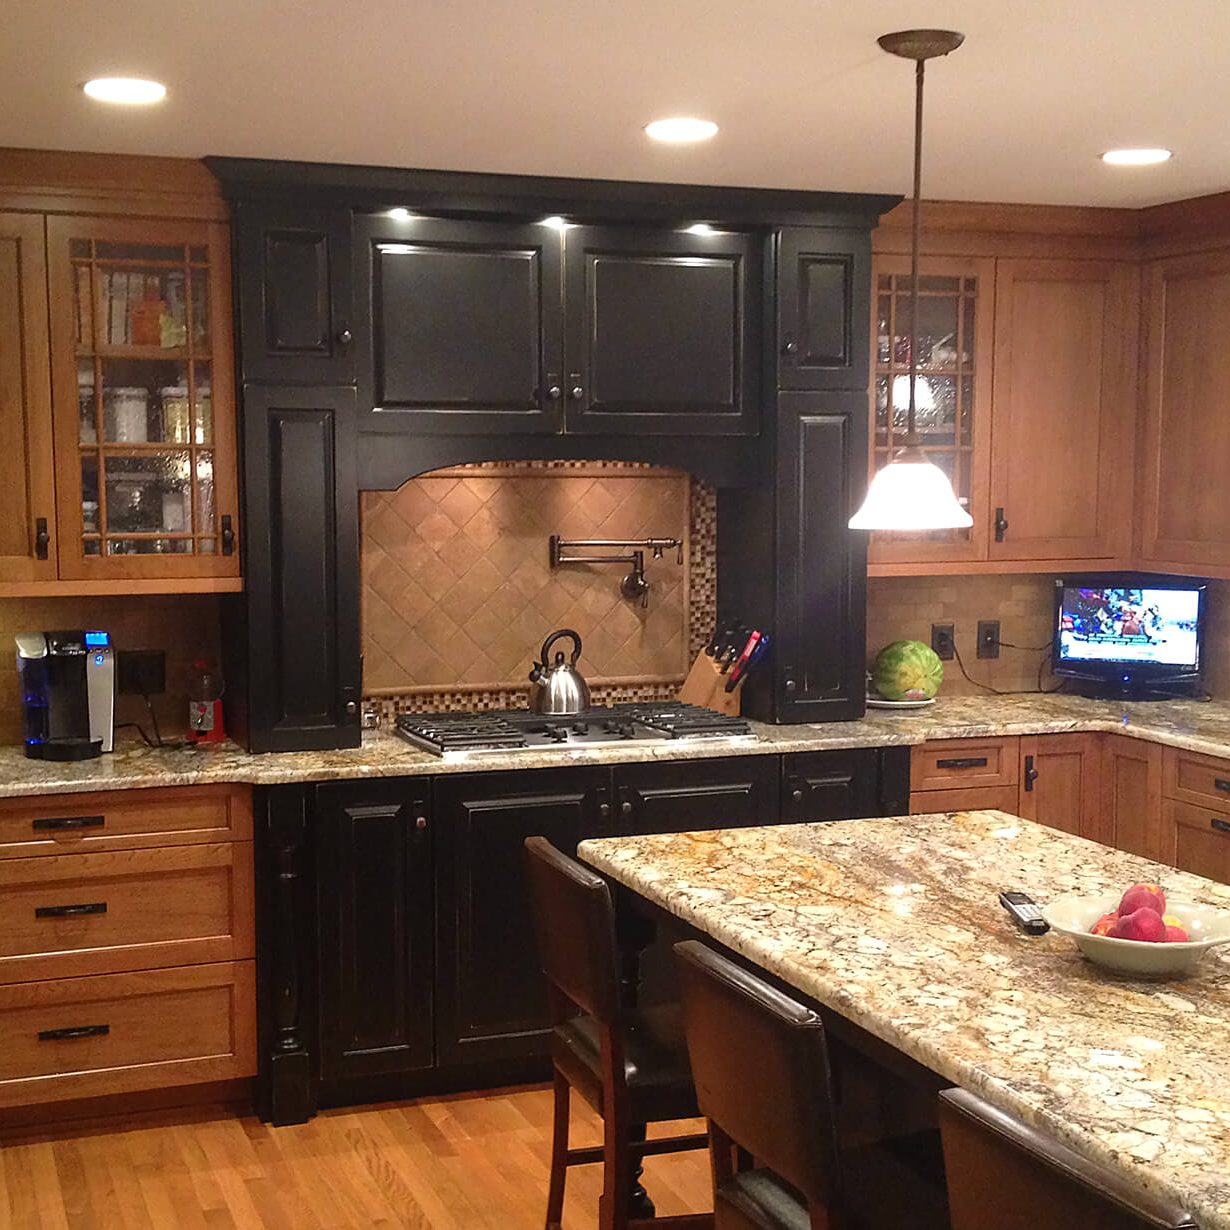 Kinetic Kitchen and Bath gallery photo of a kitchen remodel design.